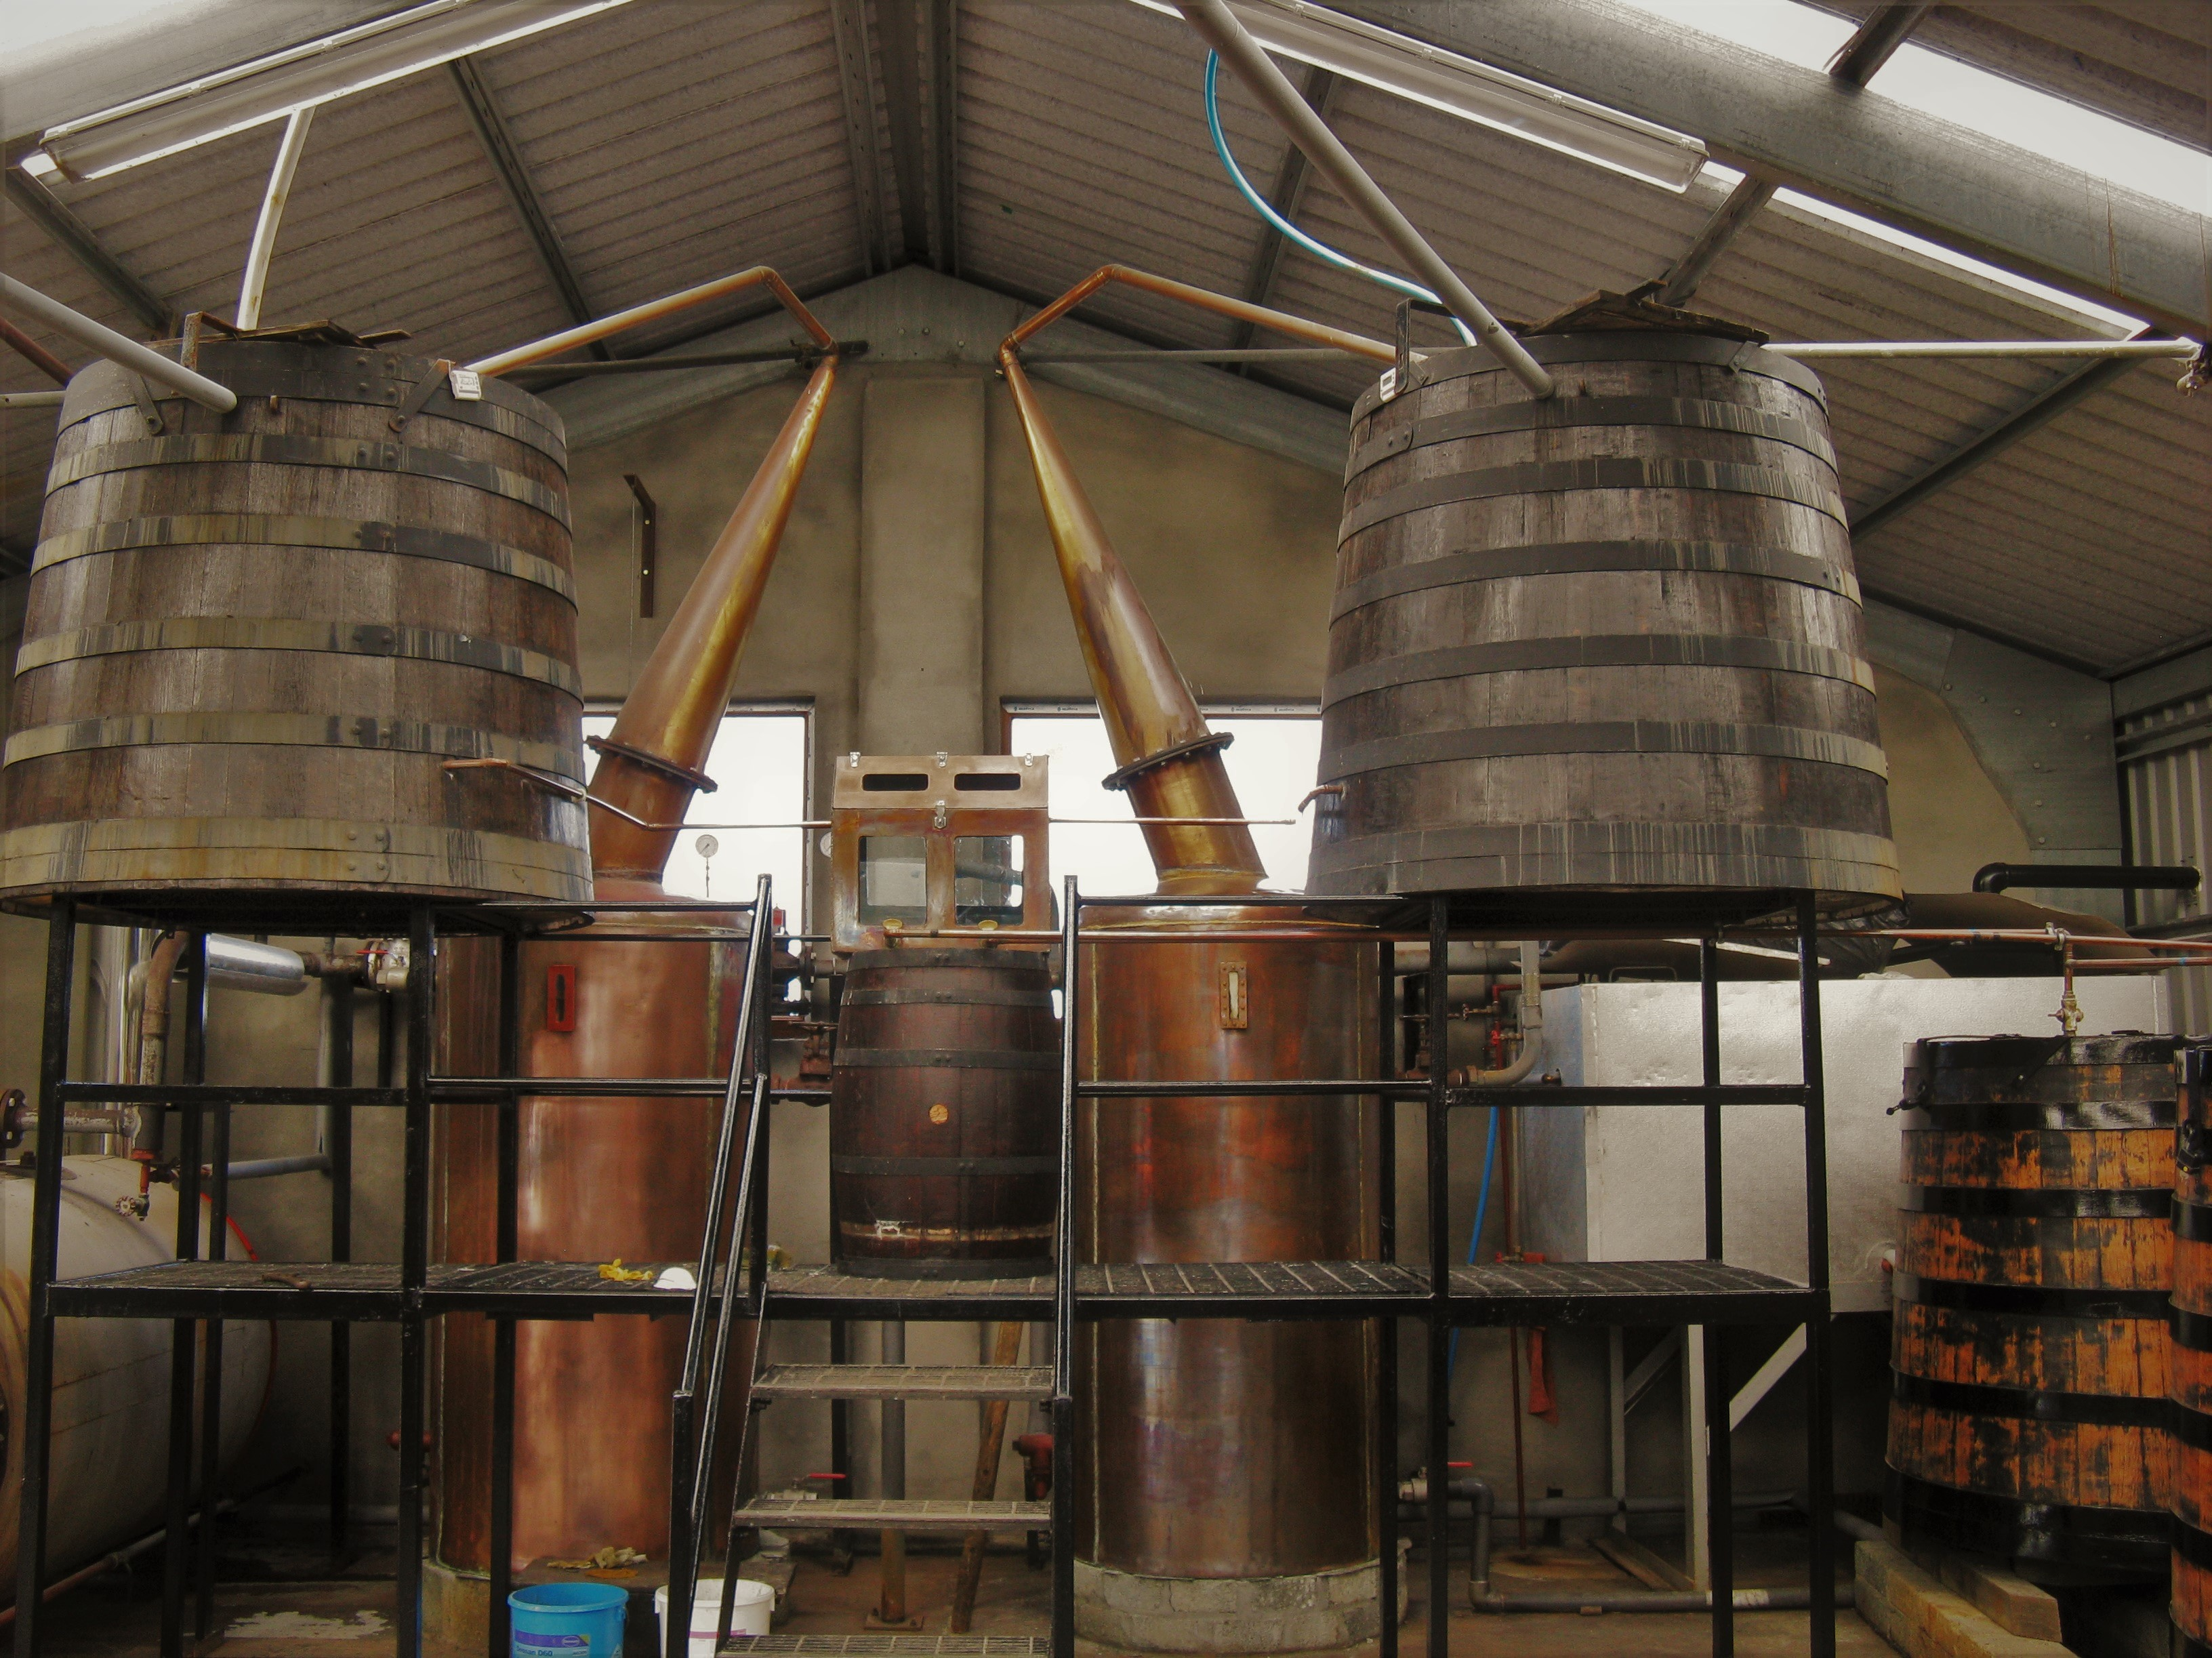 The stills at Abhainn Dearg distillery